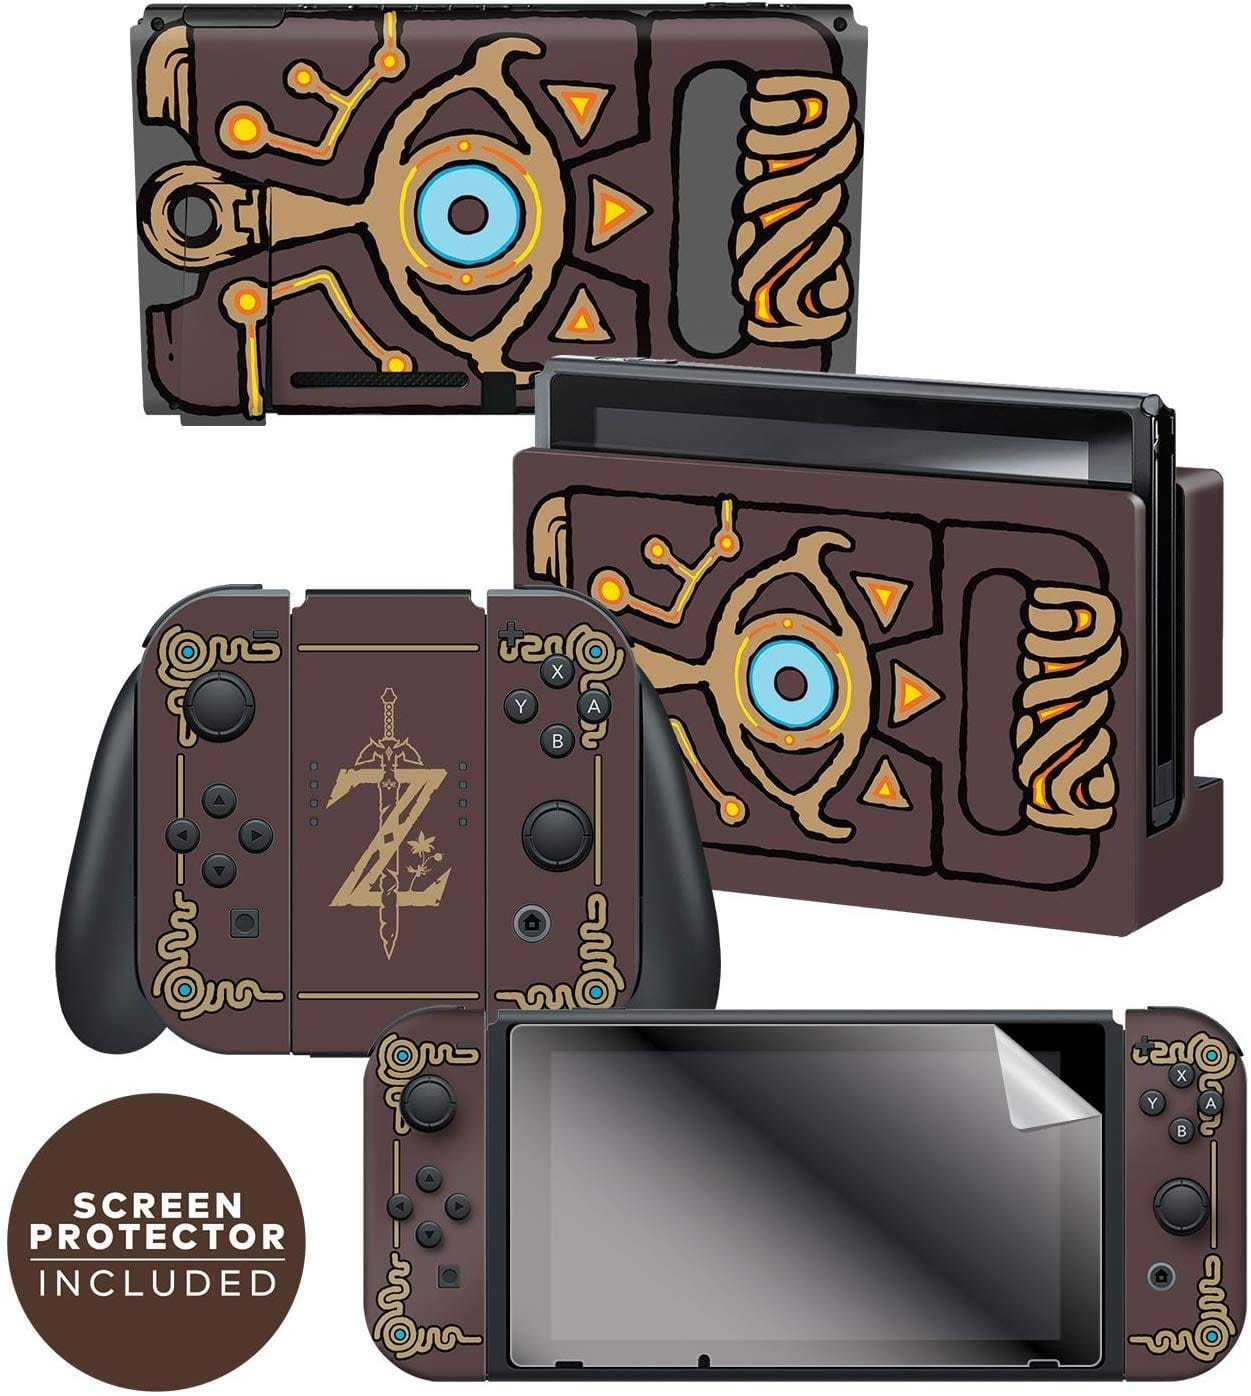 Controller Gear Officially Licensed Nintendo Switch Skin & Screen Protector Set $13.99